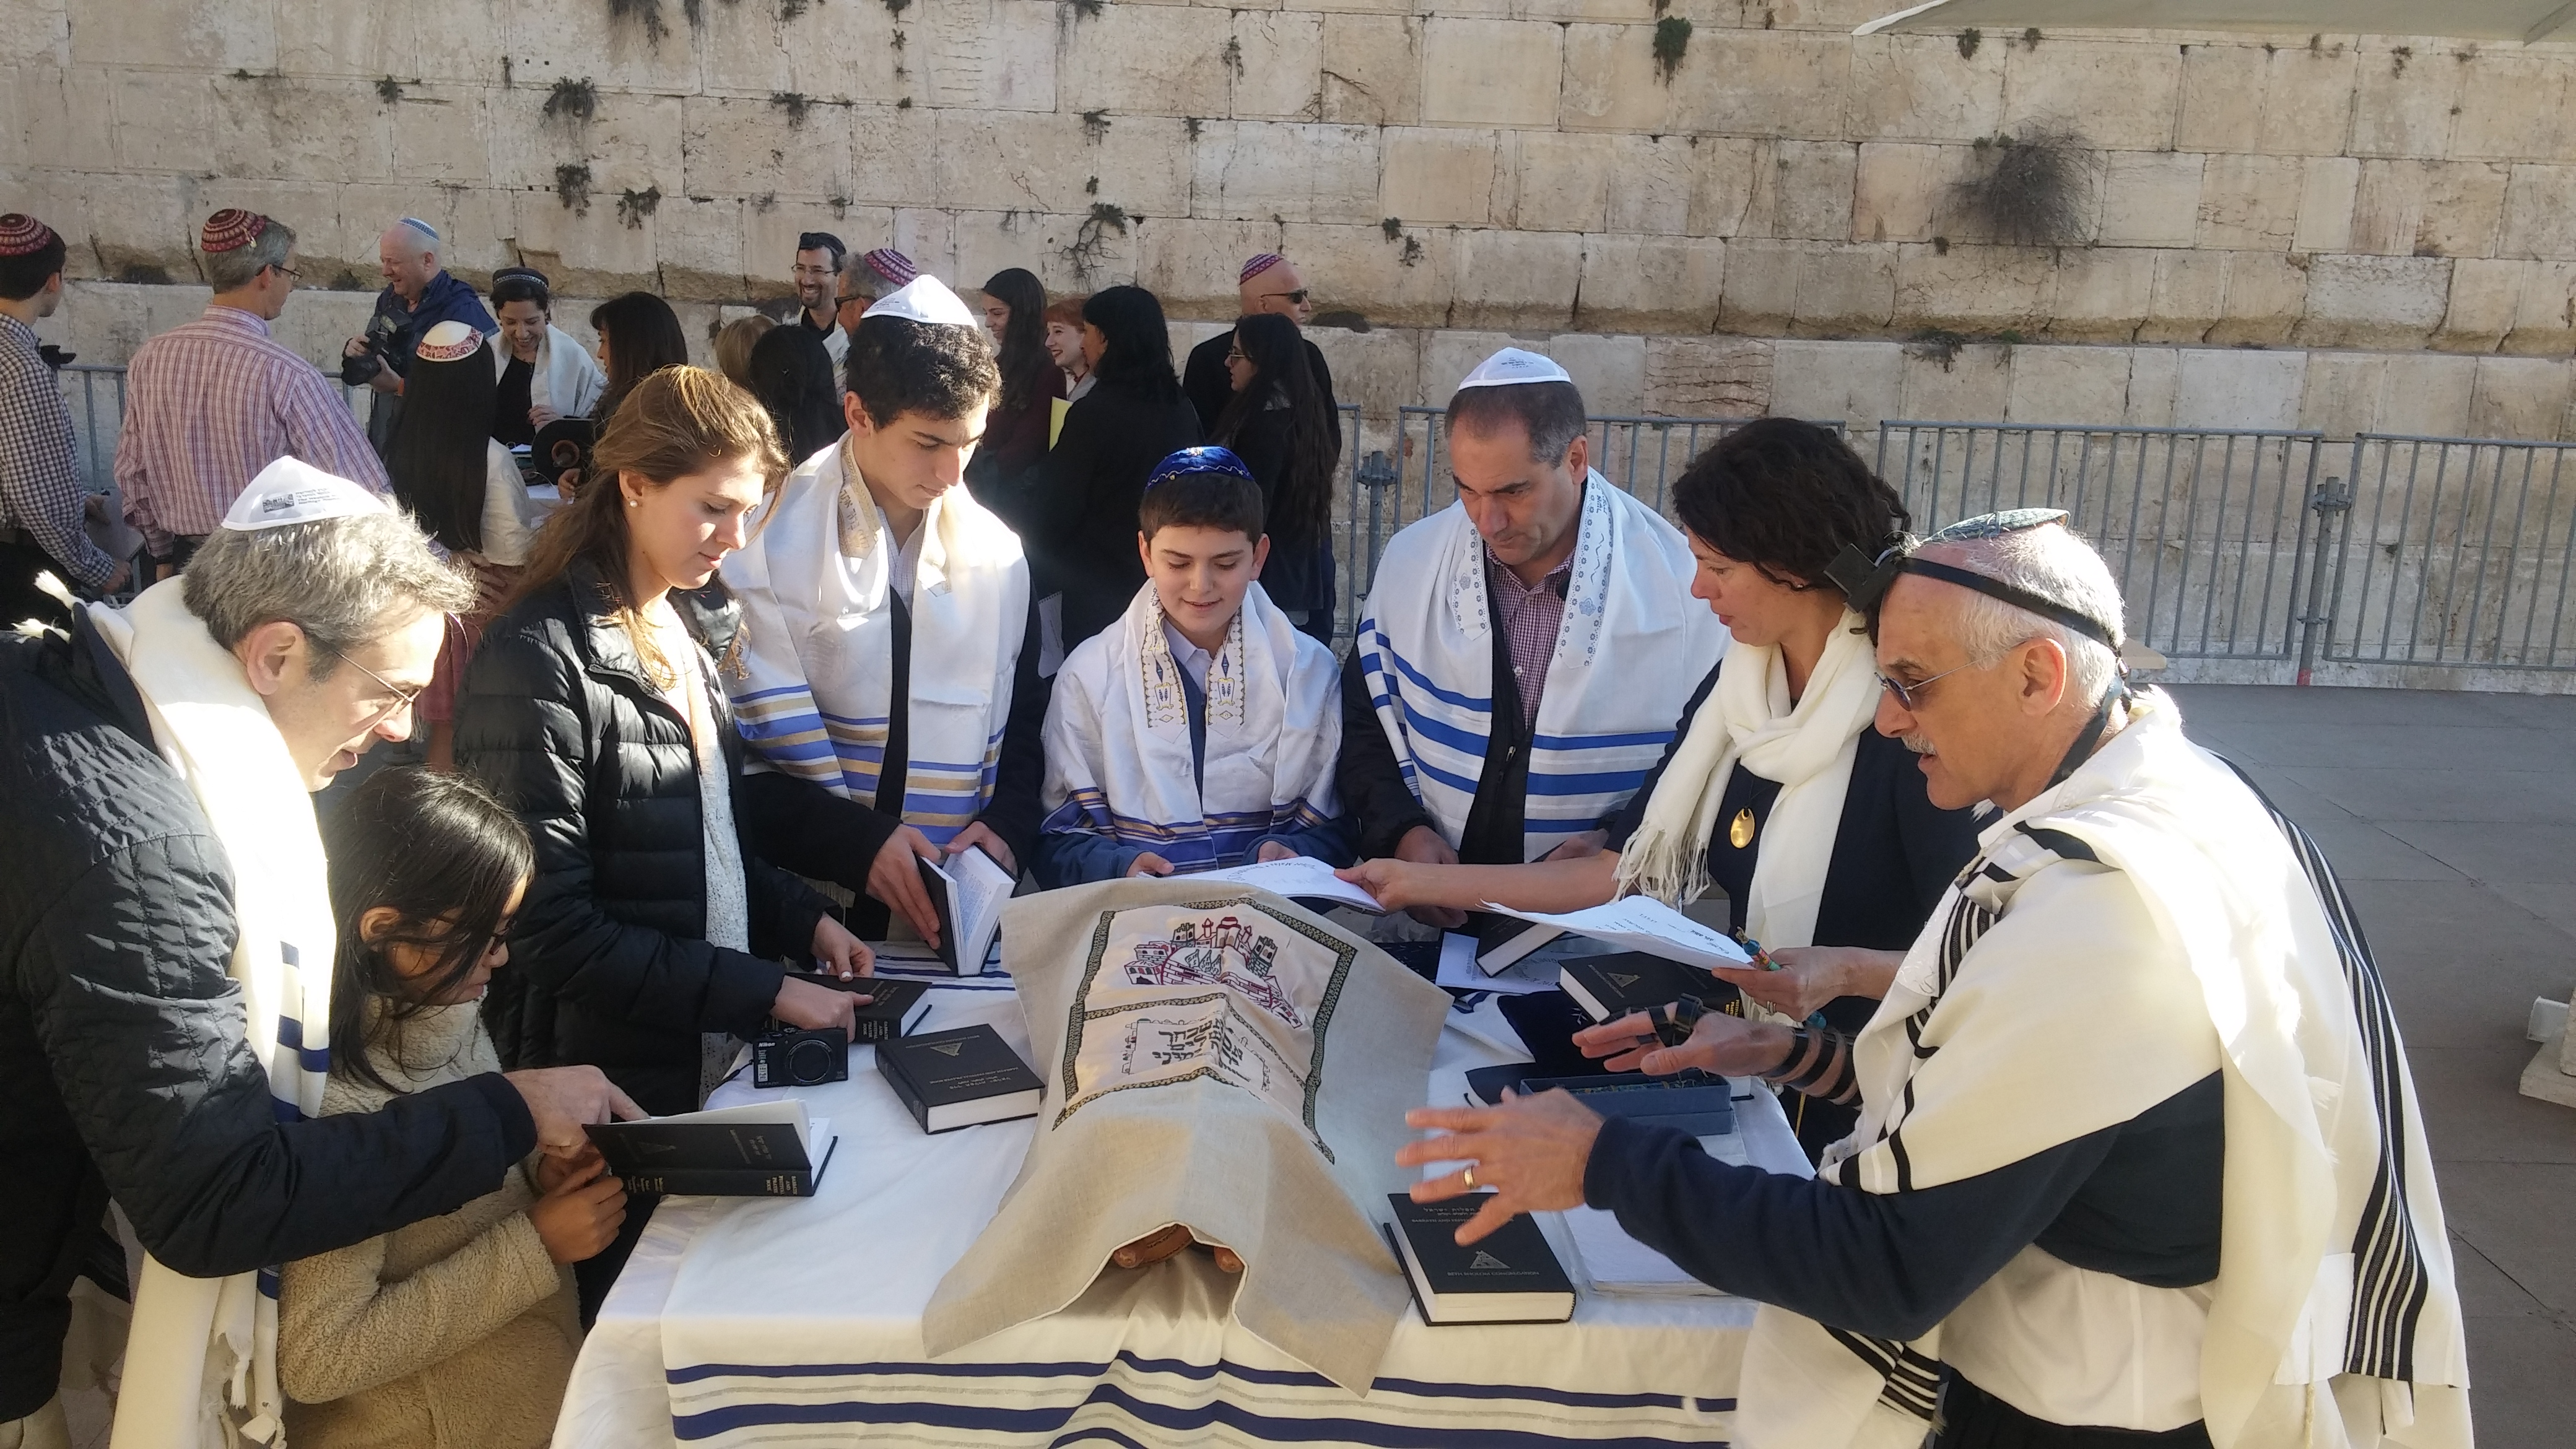 Bar Mitzvah at the Wall